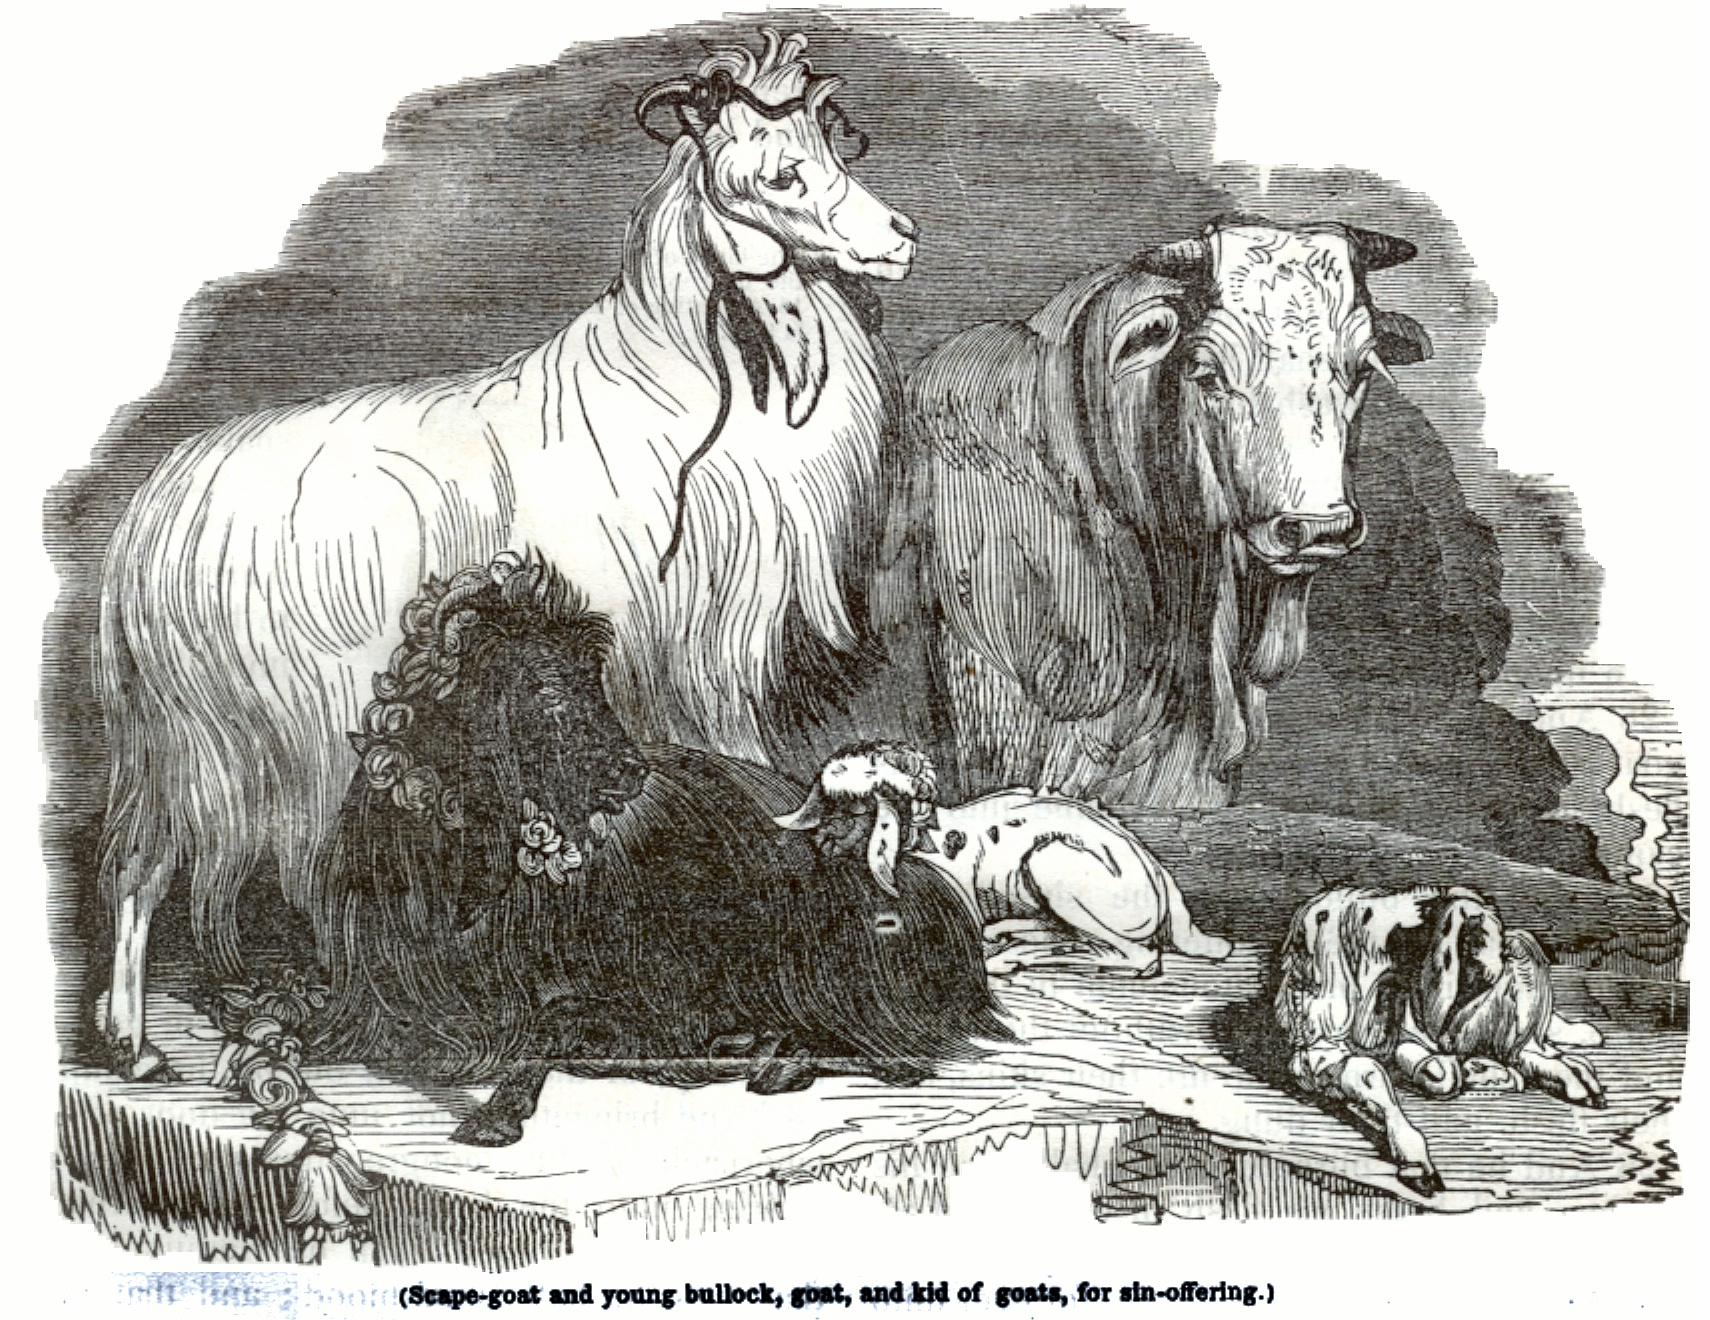 Scape goat, young bullock, goat, kid of goats, for sin offering